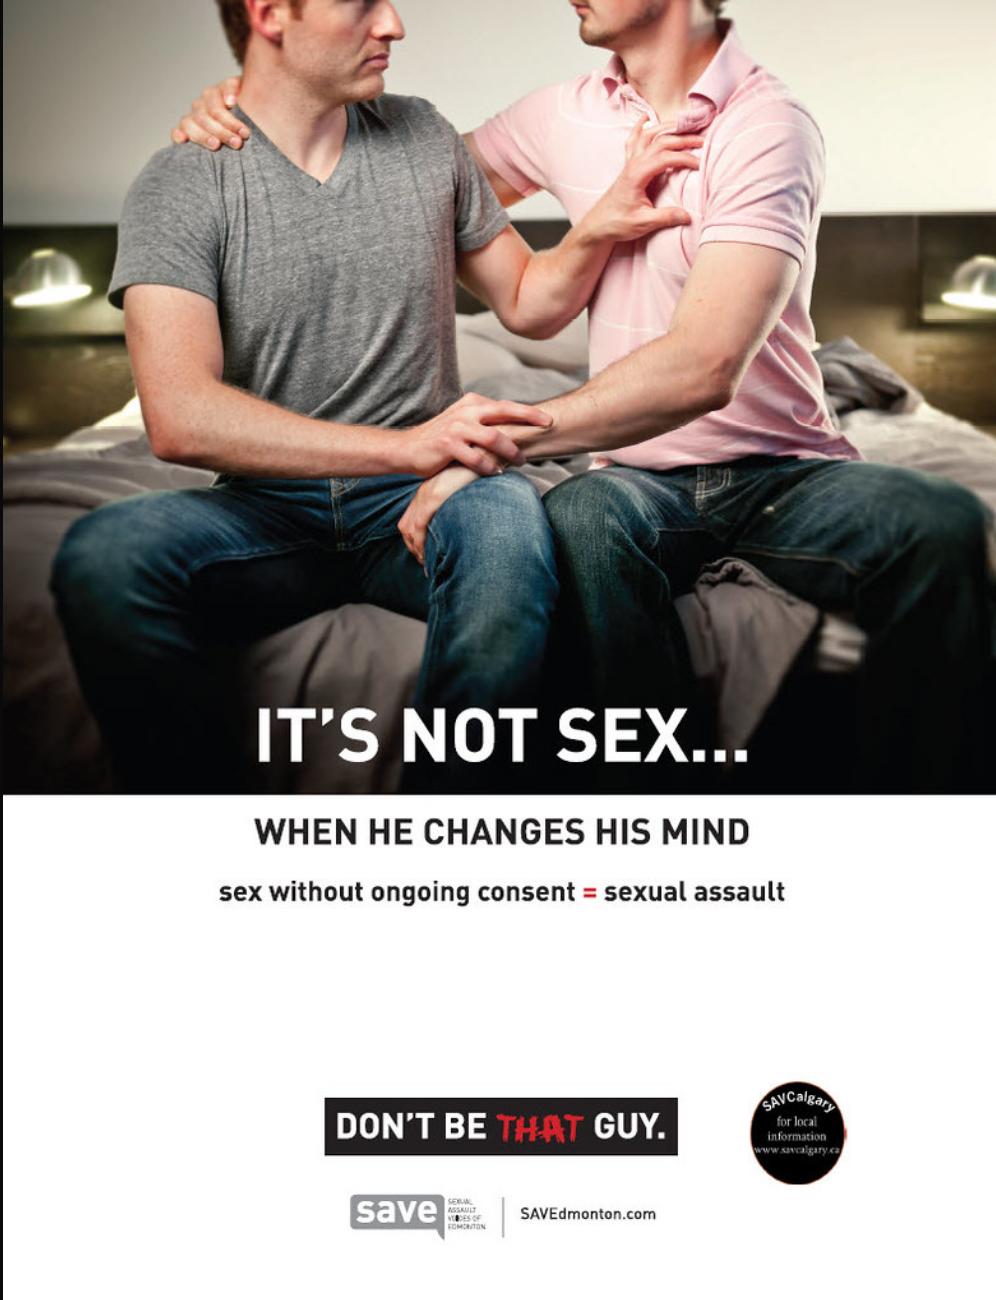 It's not sex - when he changes his mind